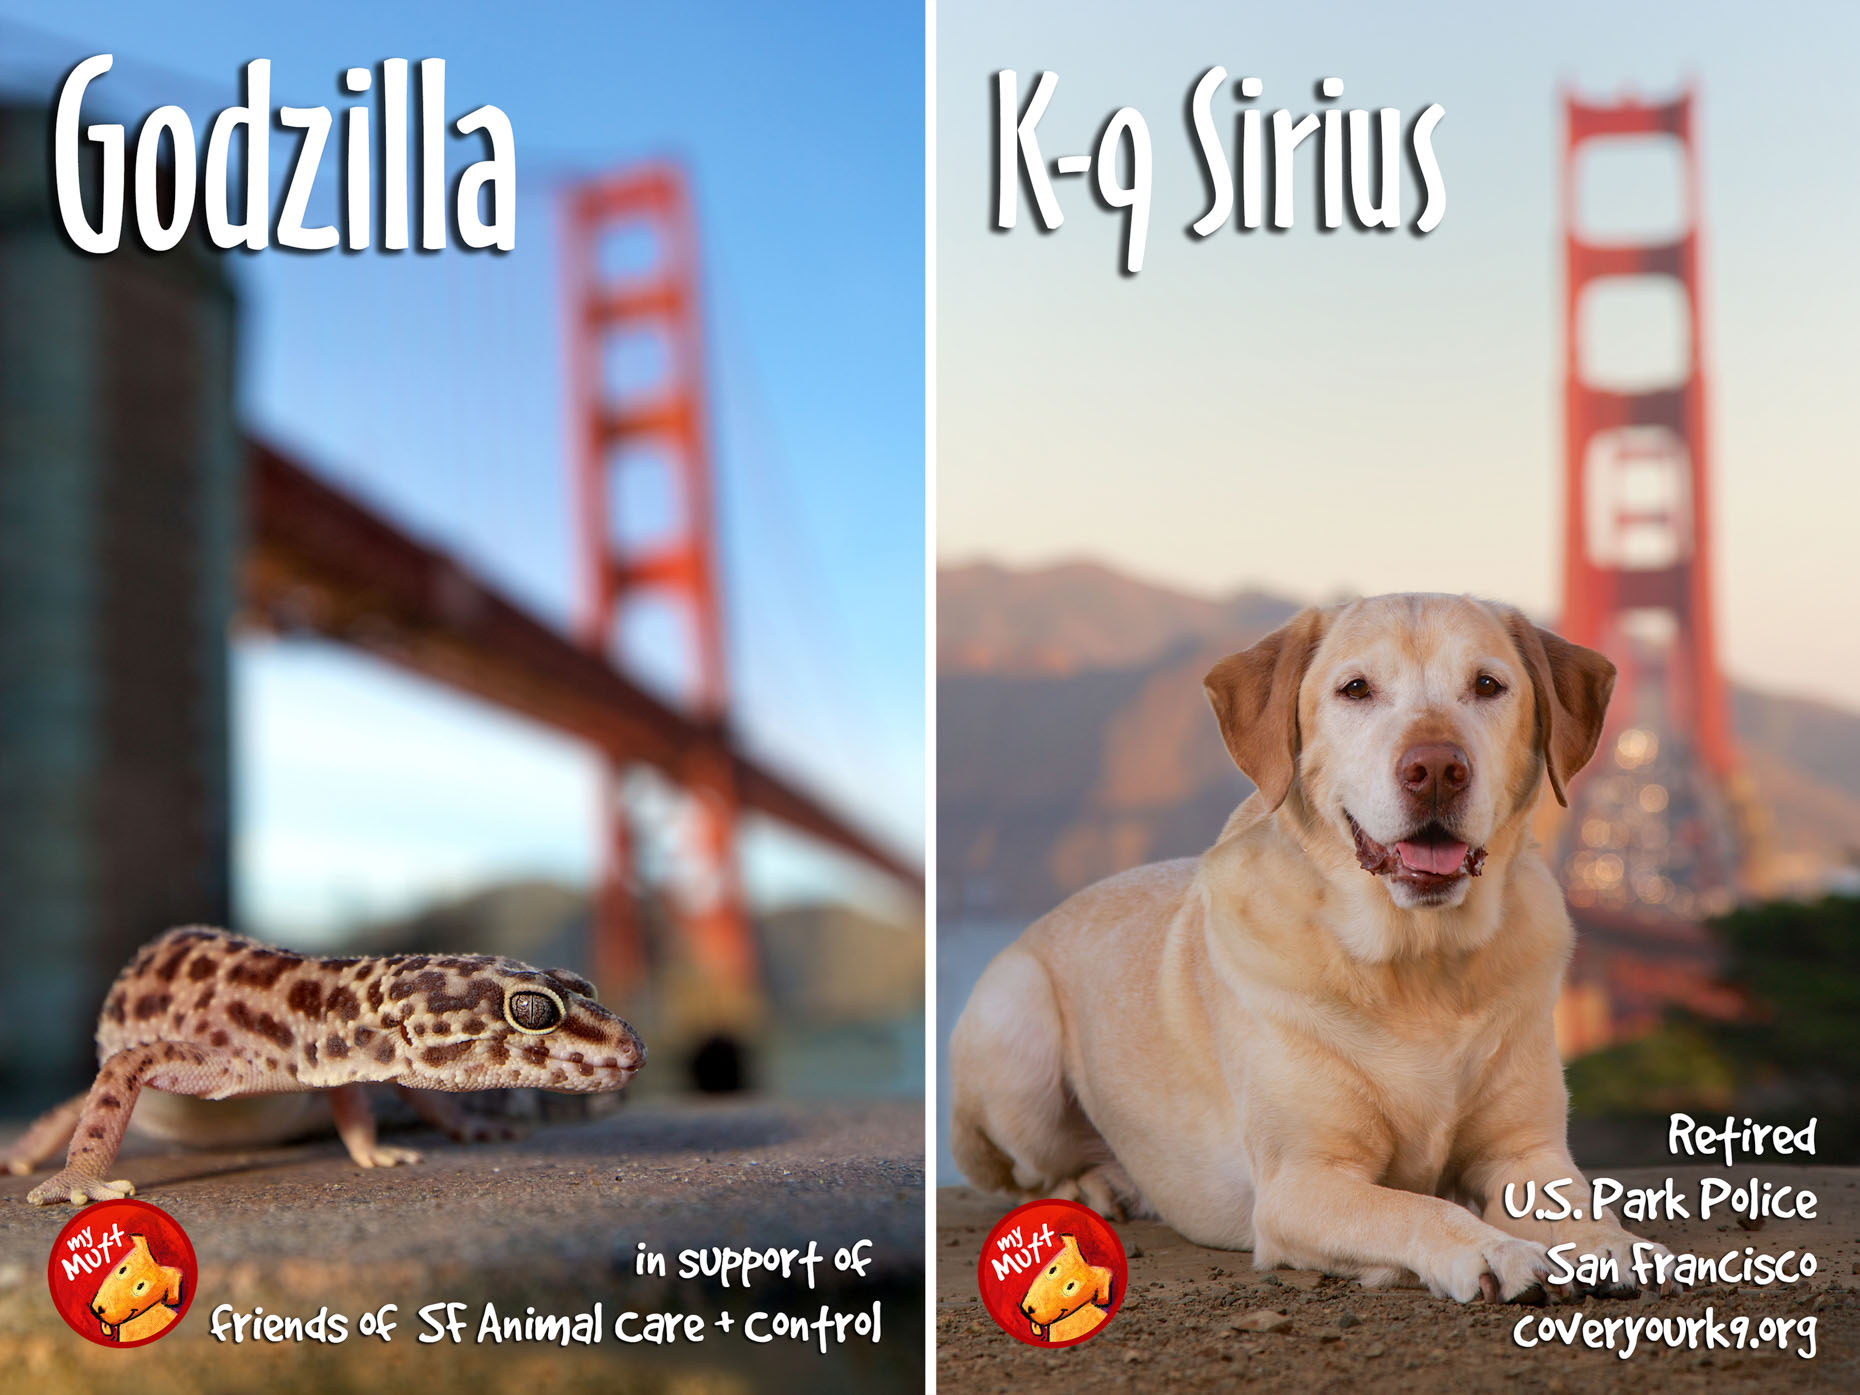 Animal Rescue Poster | Dog and Gecko Golden Gate Bridge by Mark Rogers